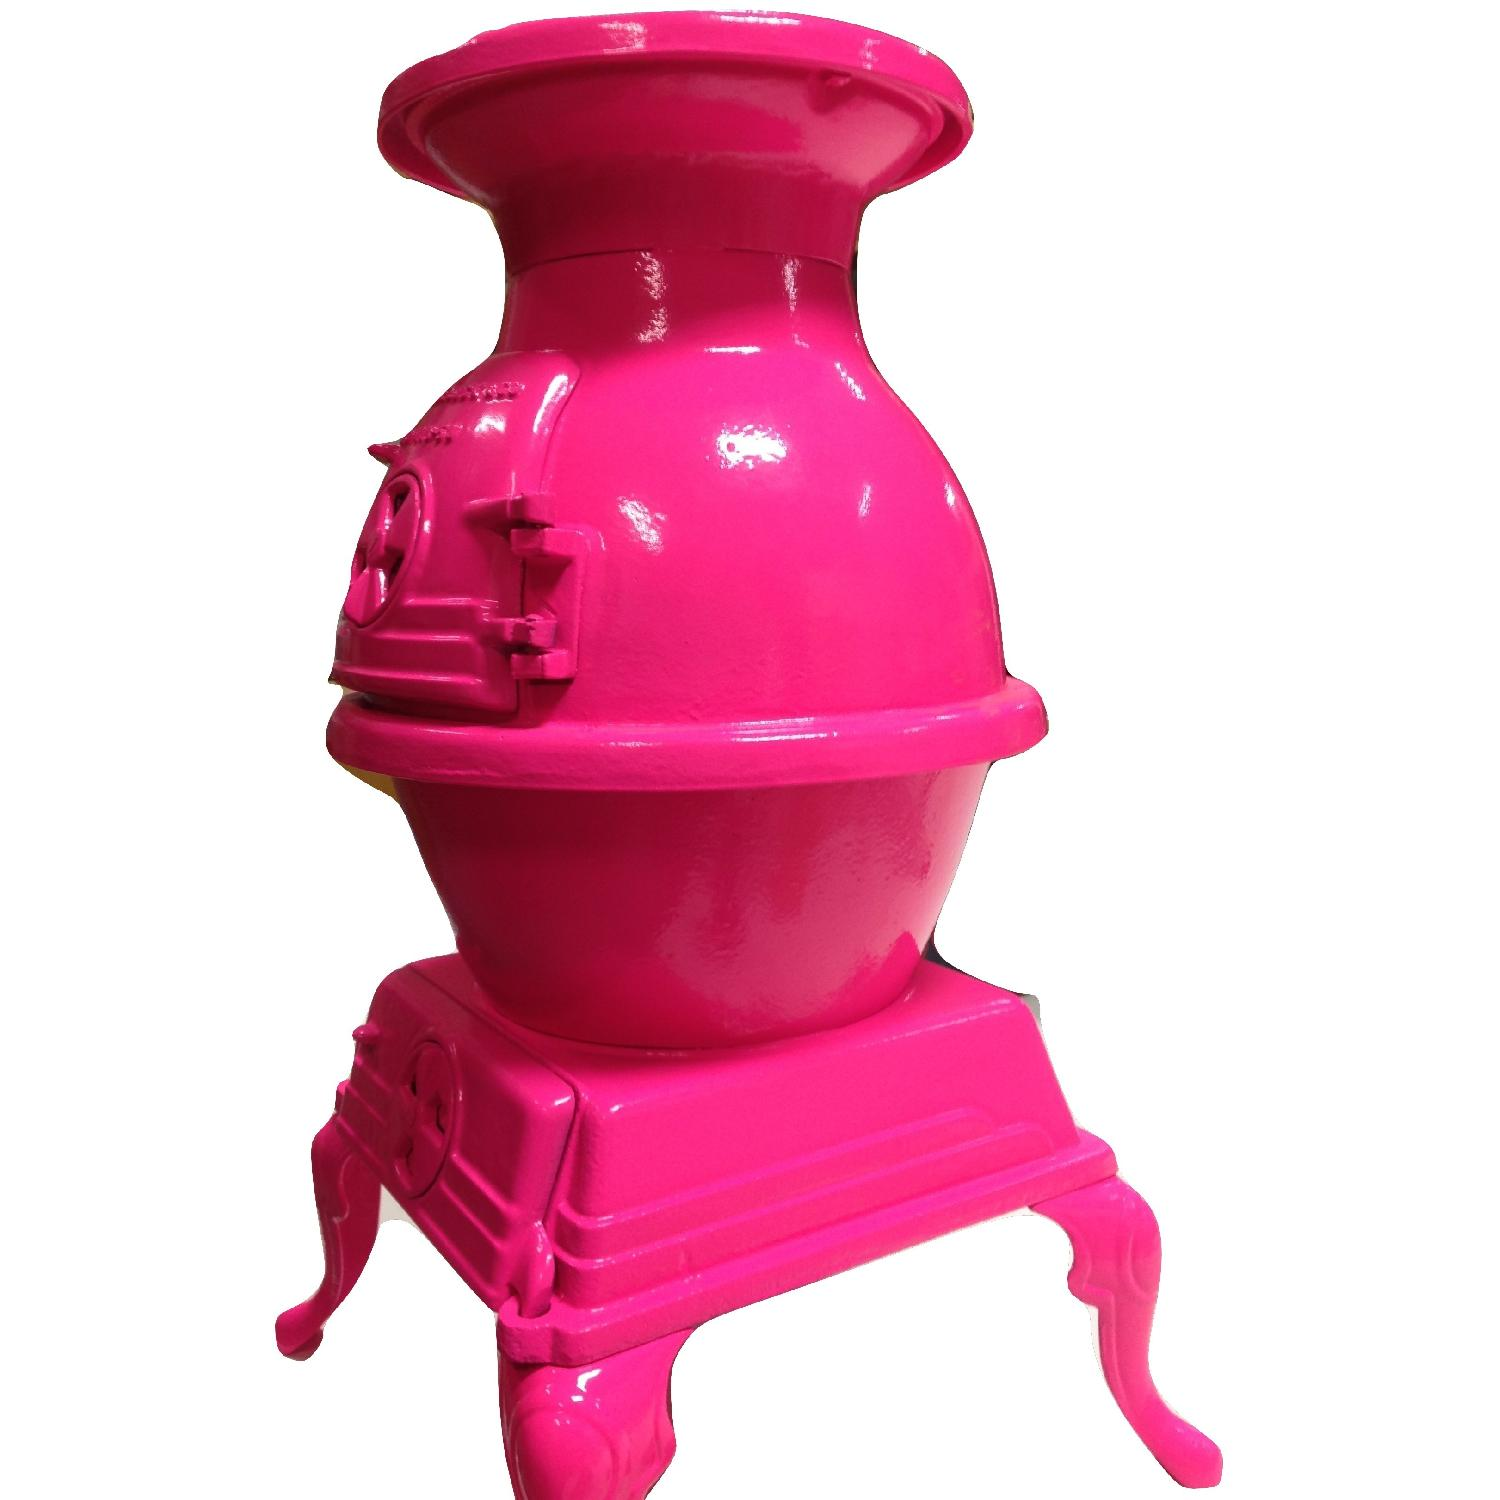 Hot Pink Pot Belly Stove-12